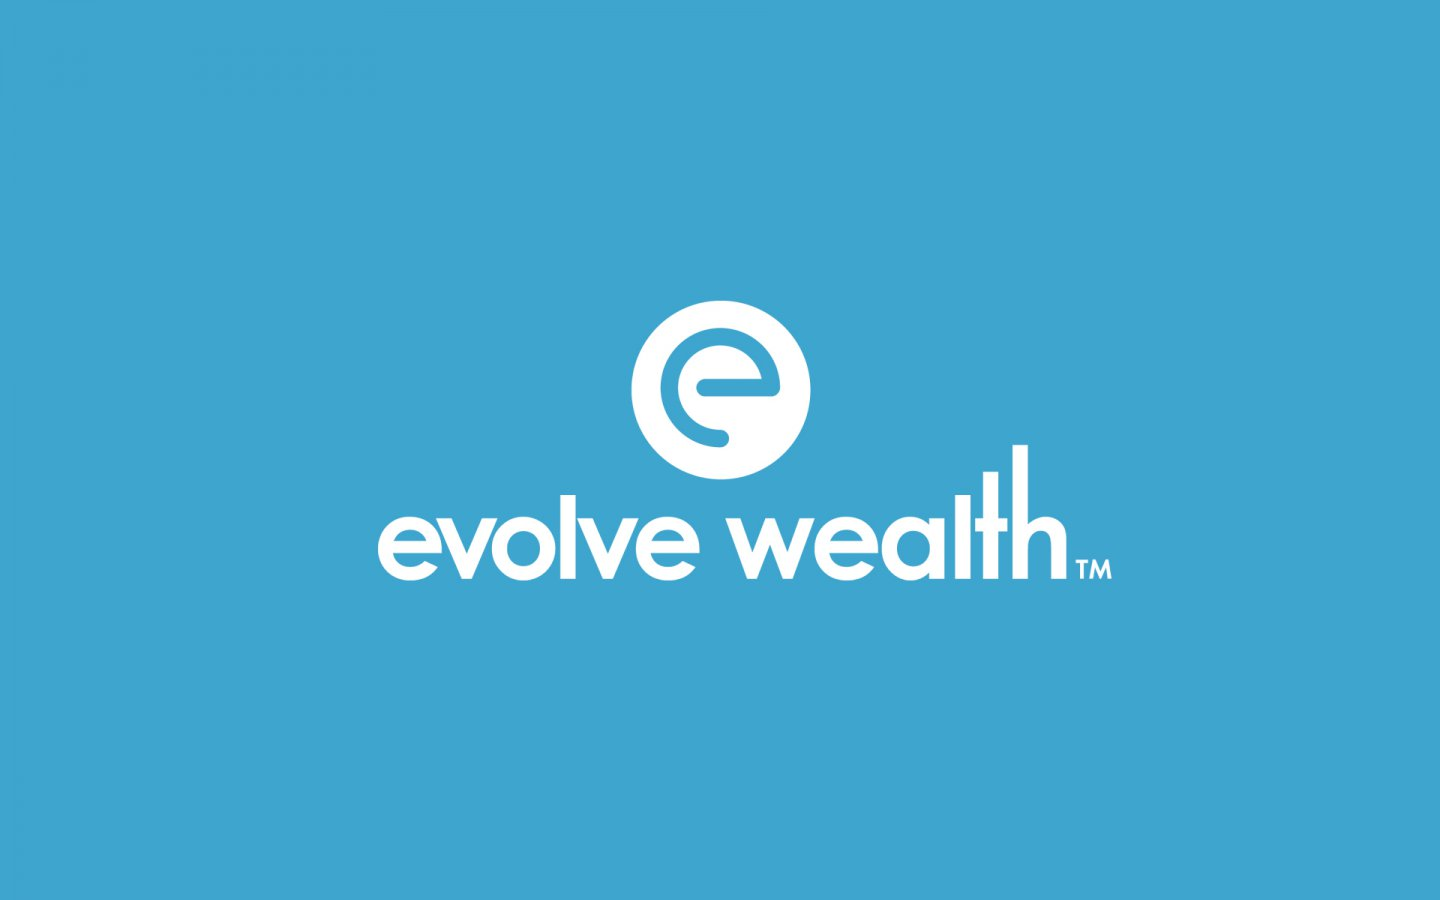 Evolve Wealth, Financial Adviser in Grimsby, Brand Colour